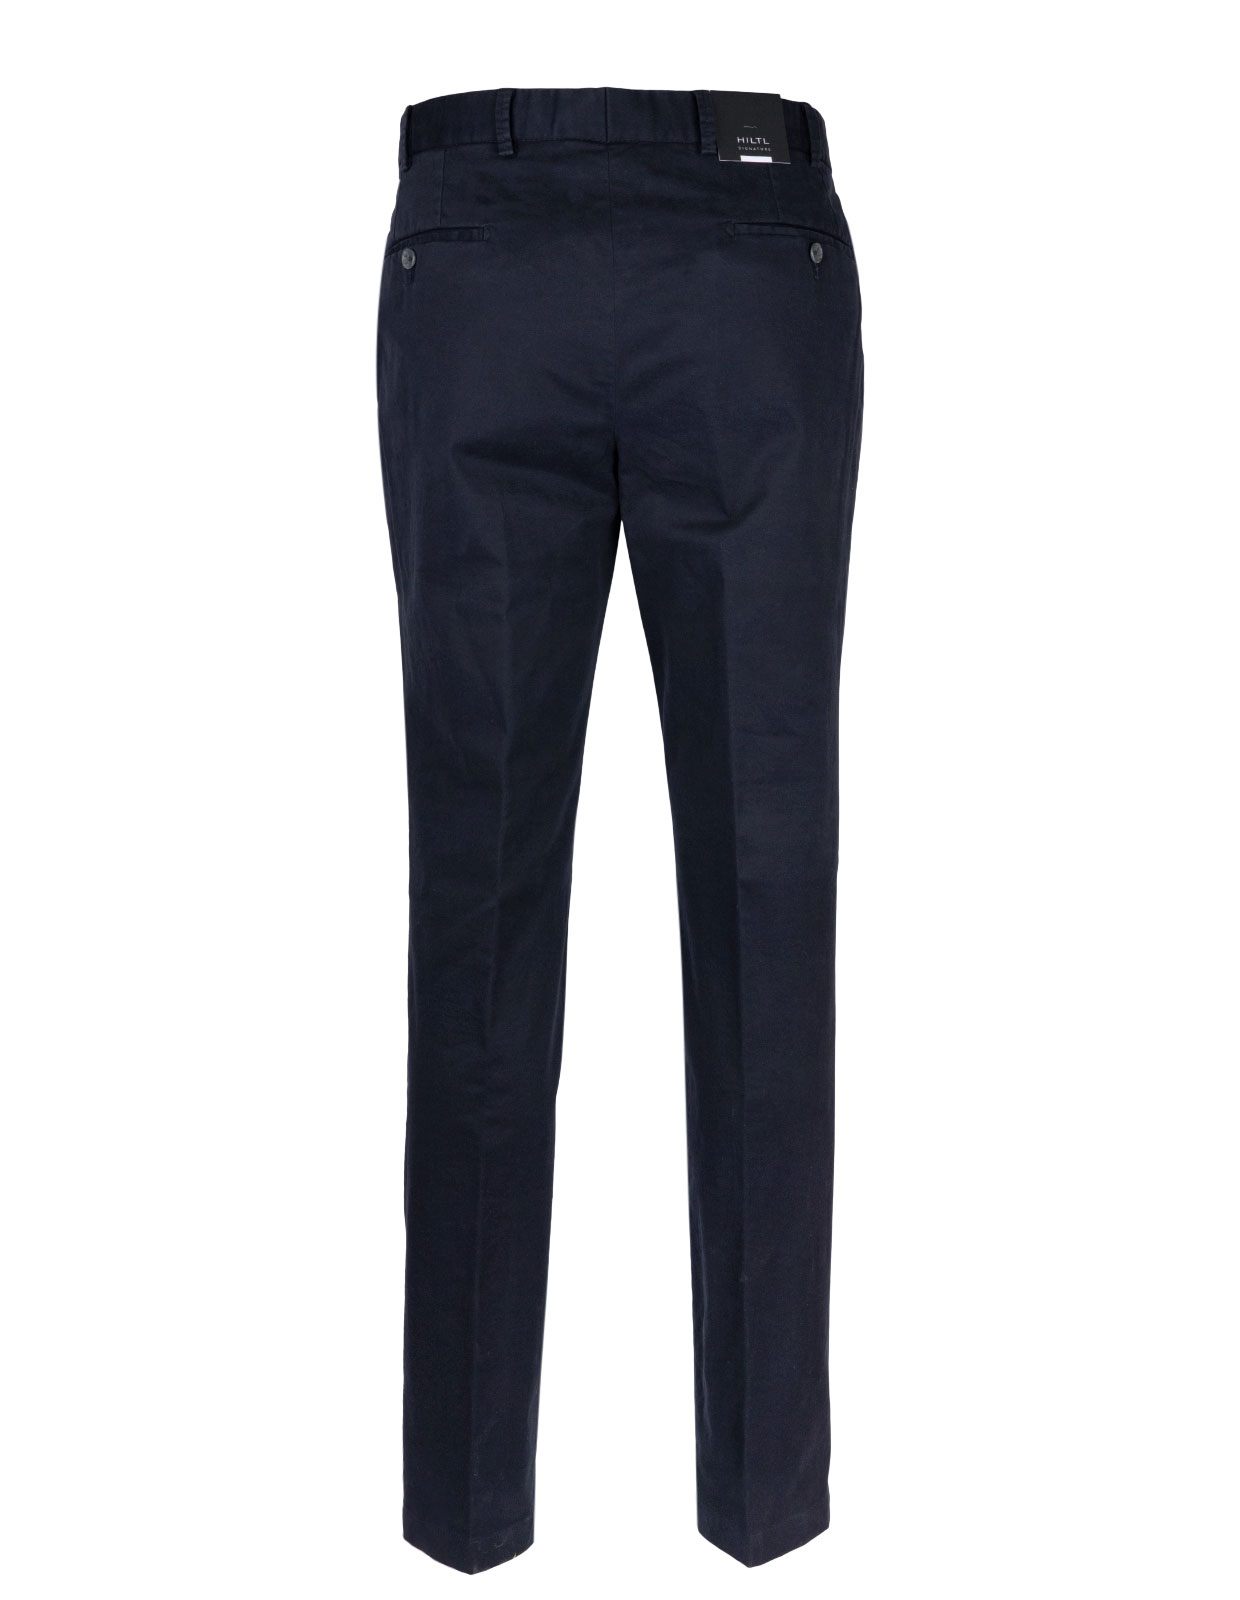 Parma Regular Fit Byxa Cotton Twill Navy